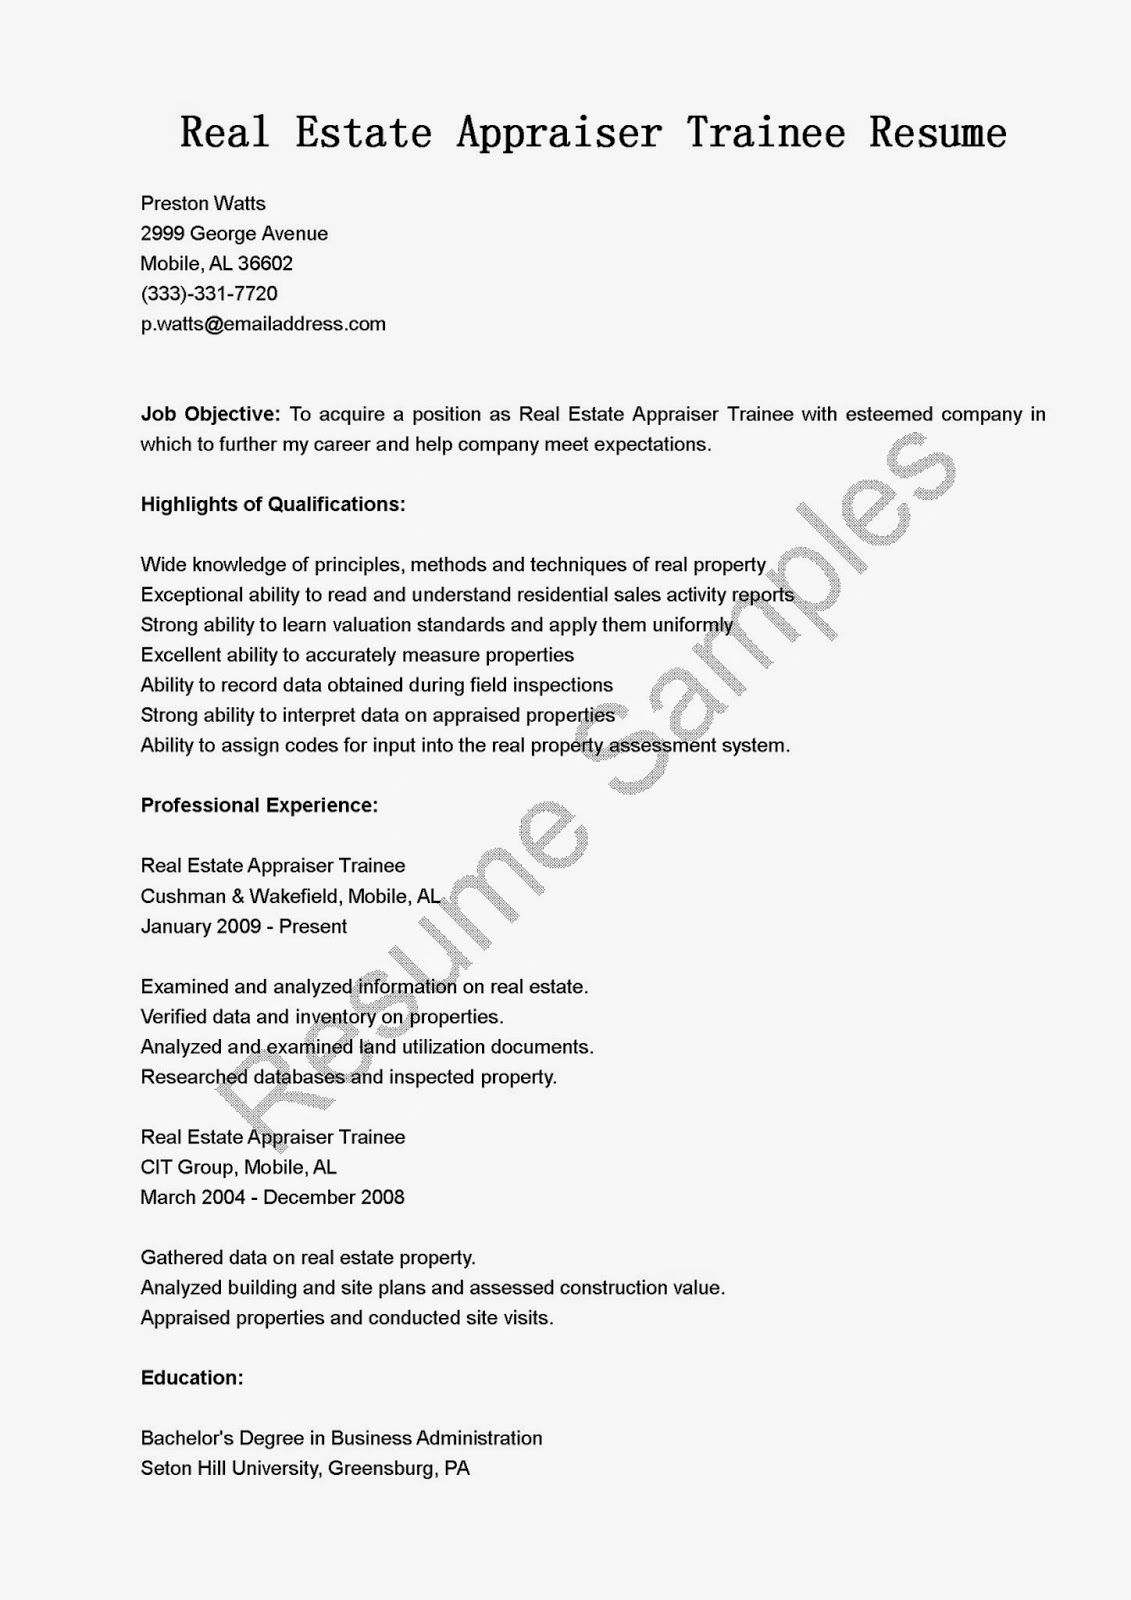 free resumes samples are available you can use as an example resume for your reference theyre prepared in a professional manner